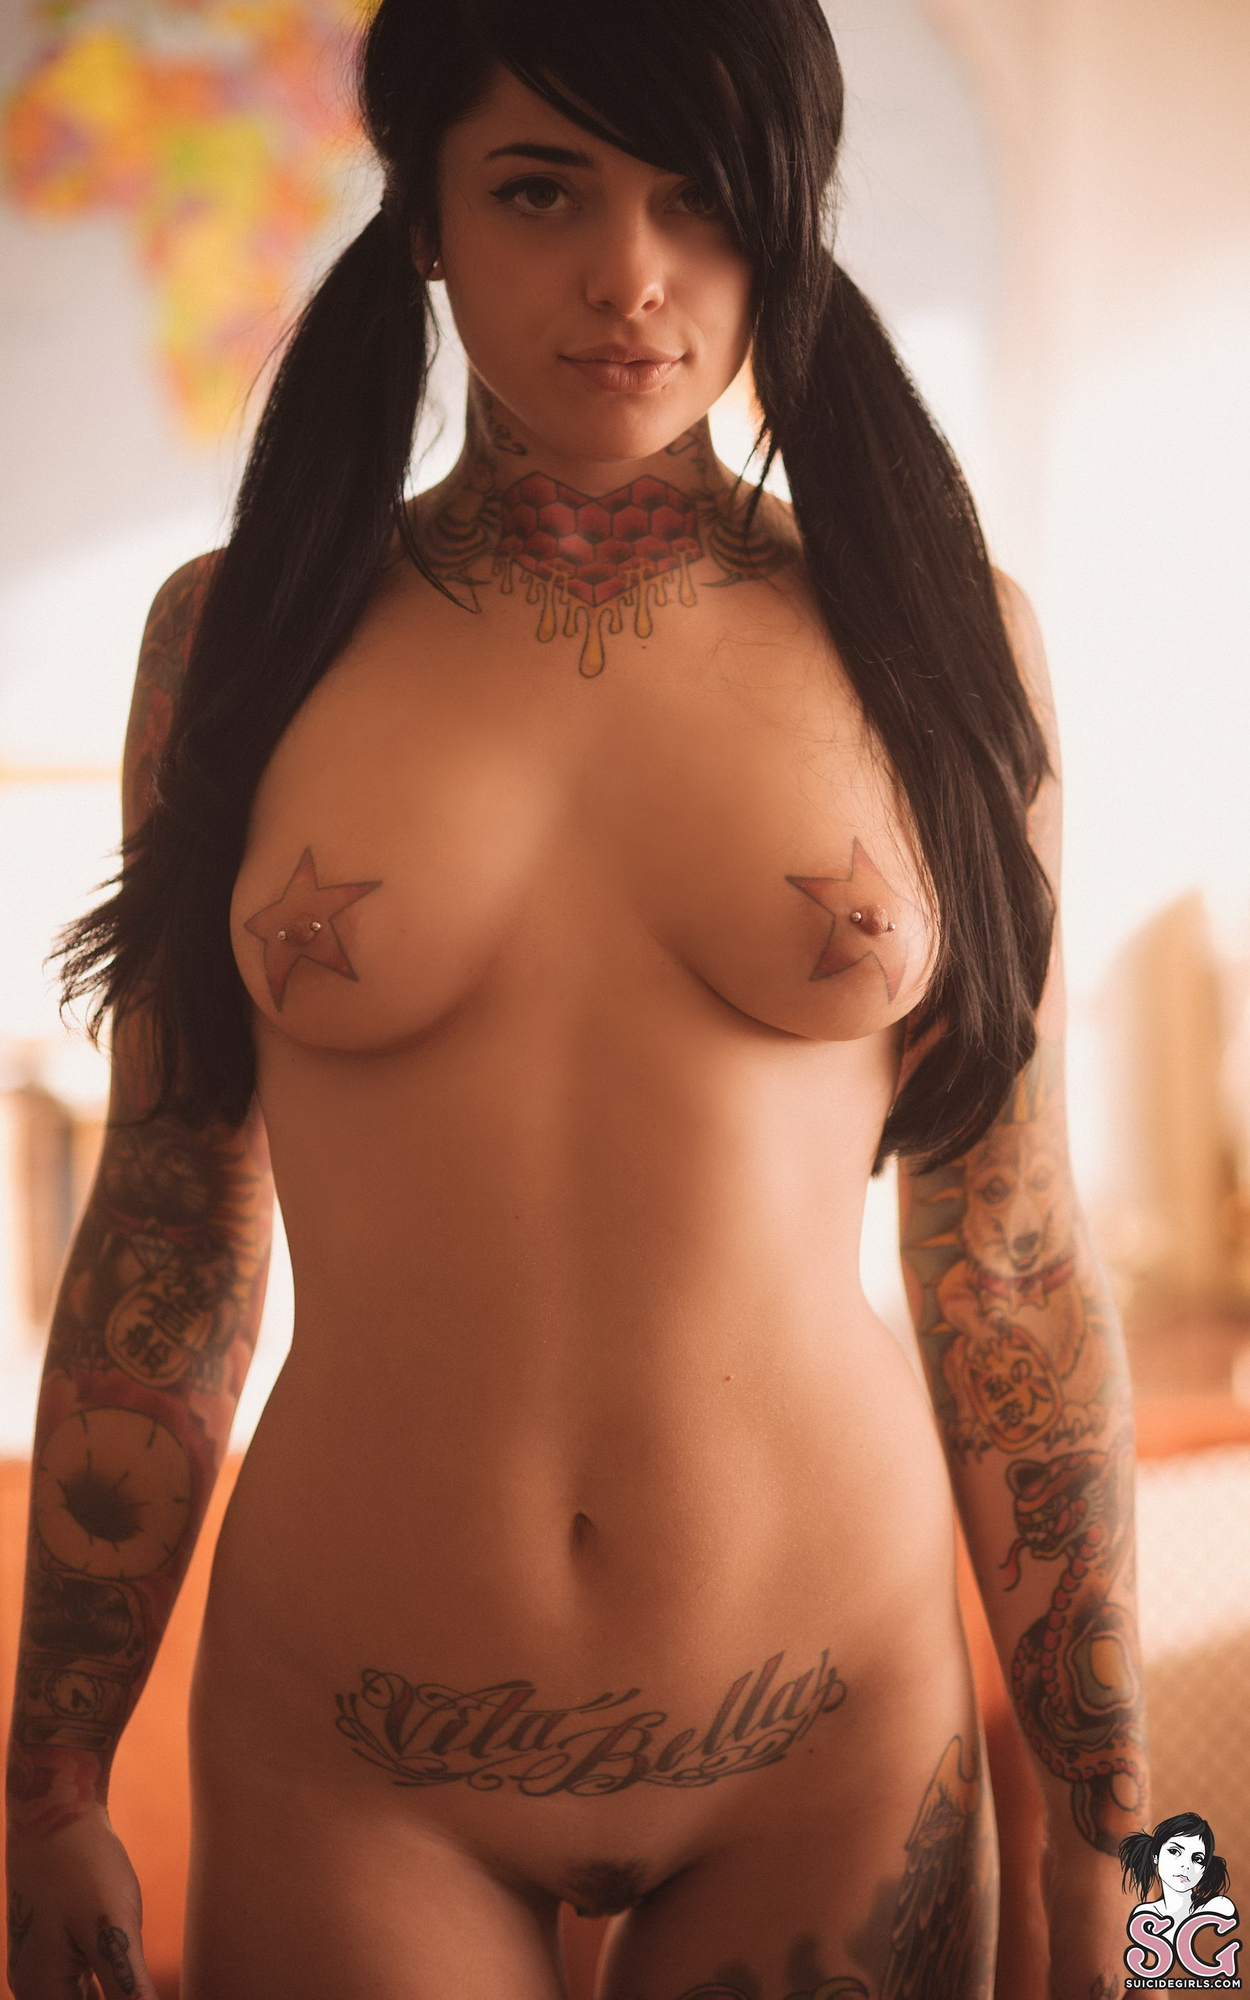 radeo-nude-brunette-roller-skates-tattoo-suicide-girls-20